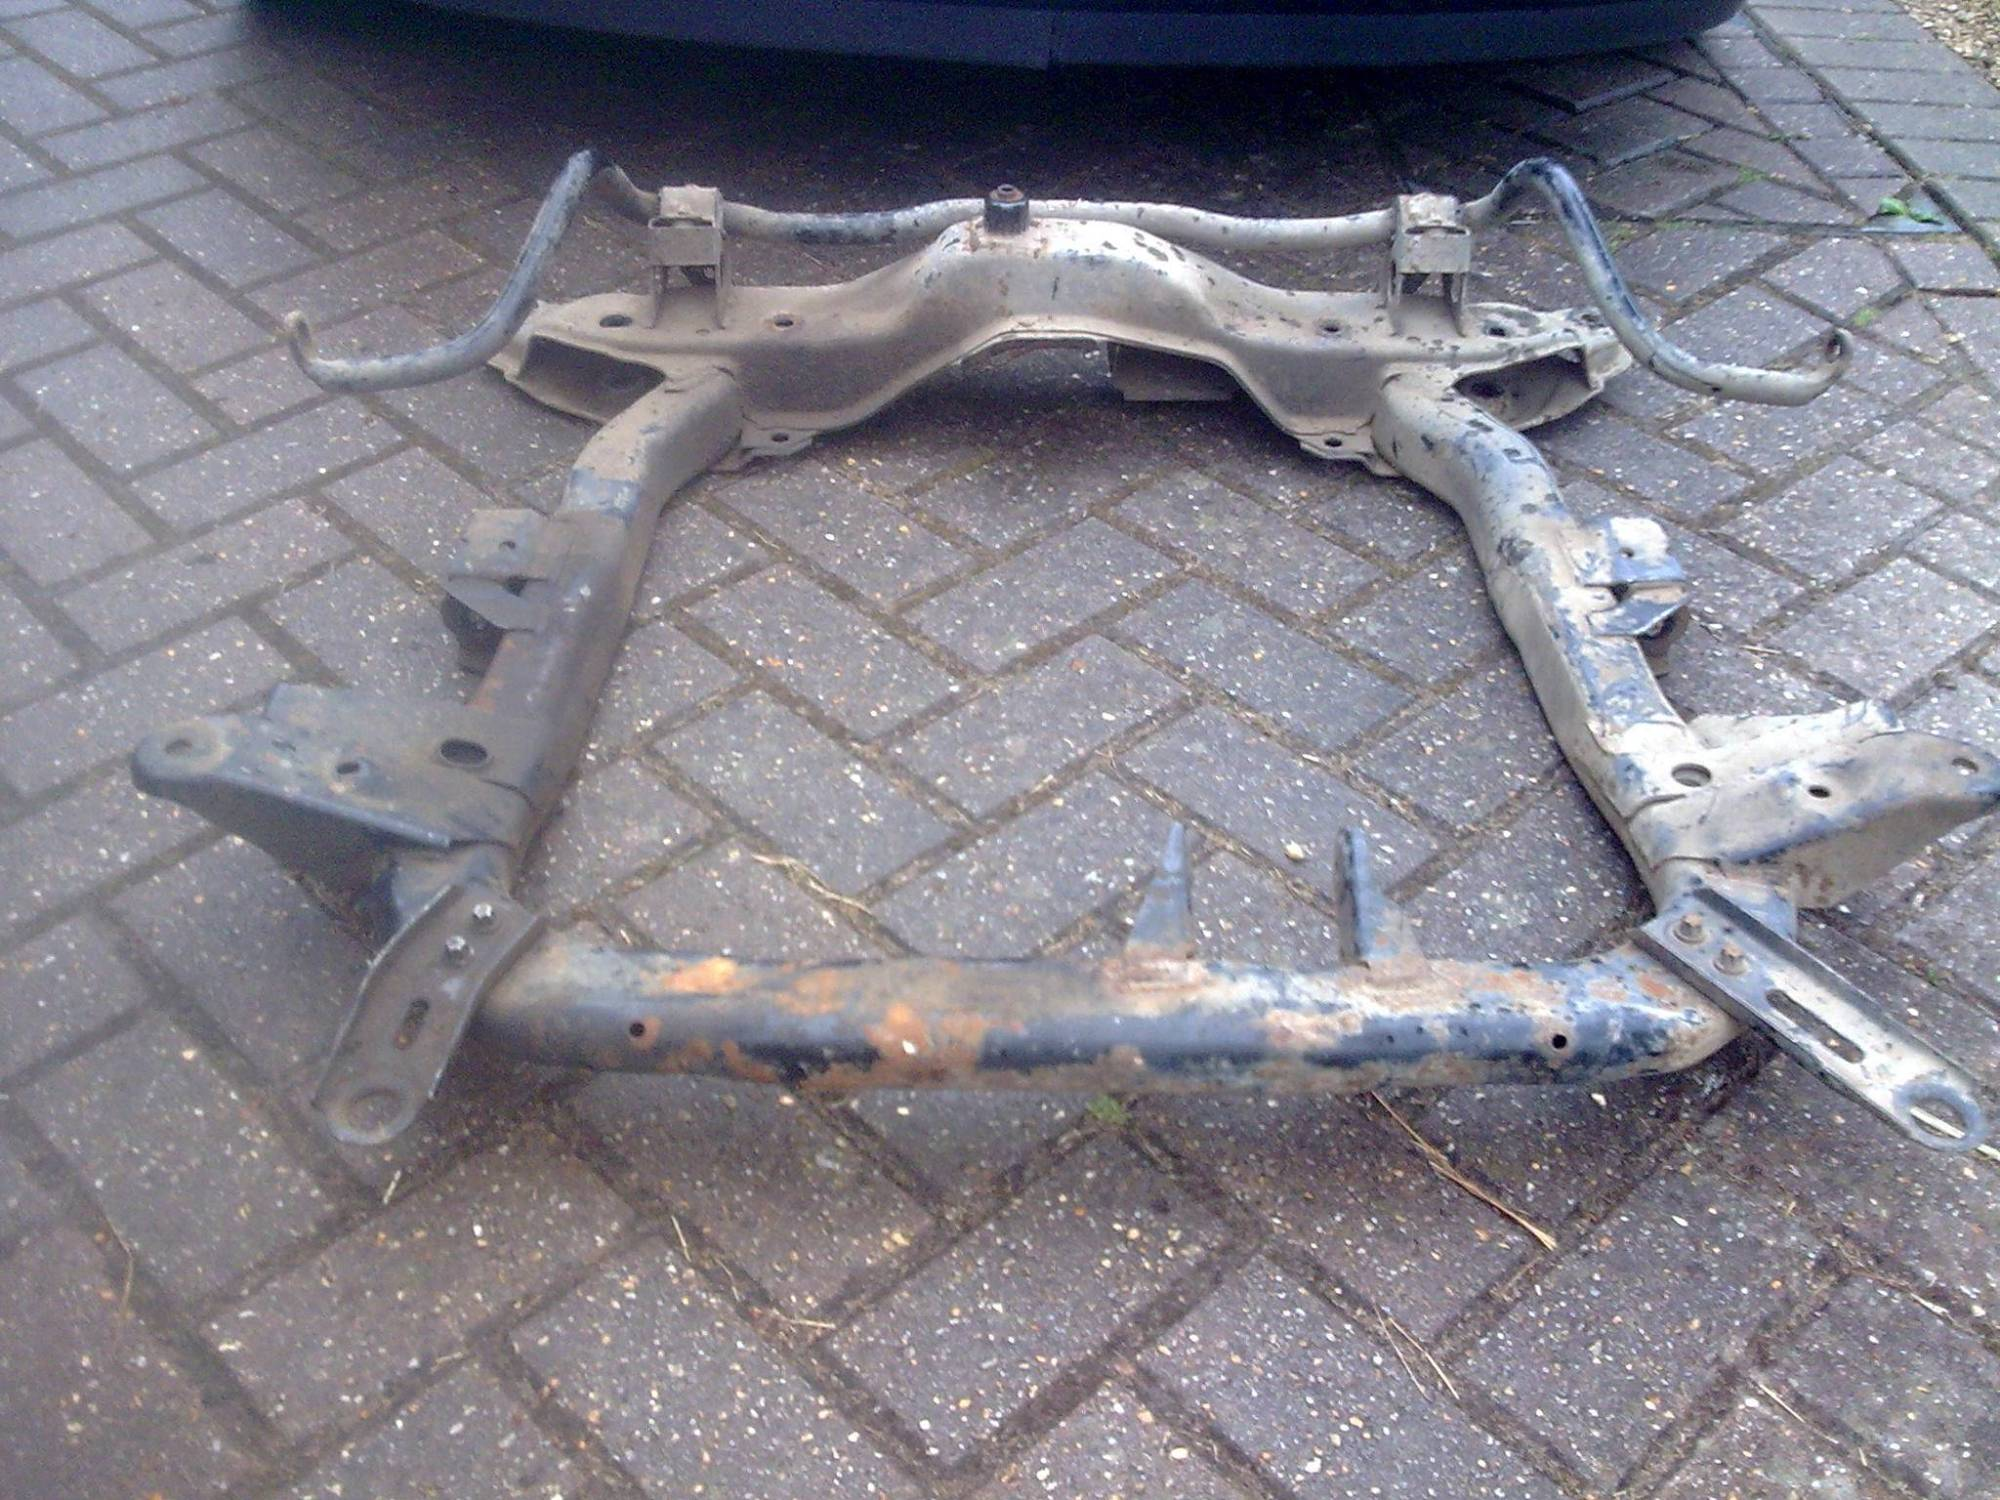 hight resolution of  and the plates to sub frame let it sit just right once weight was on it i used corsa c 1 7 cdti sub frame as is stronger than all the other ones